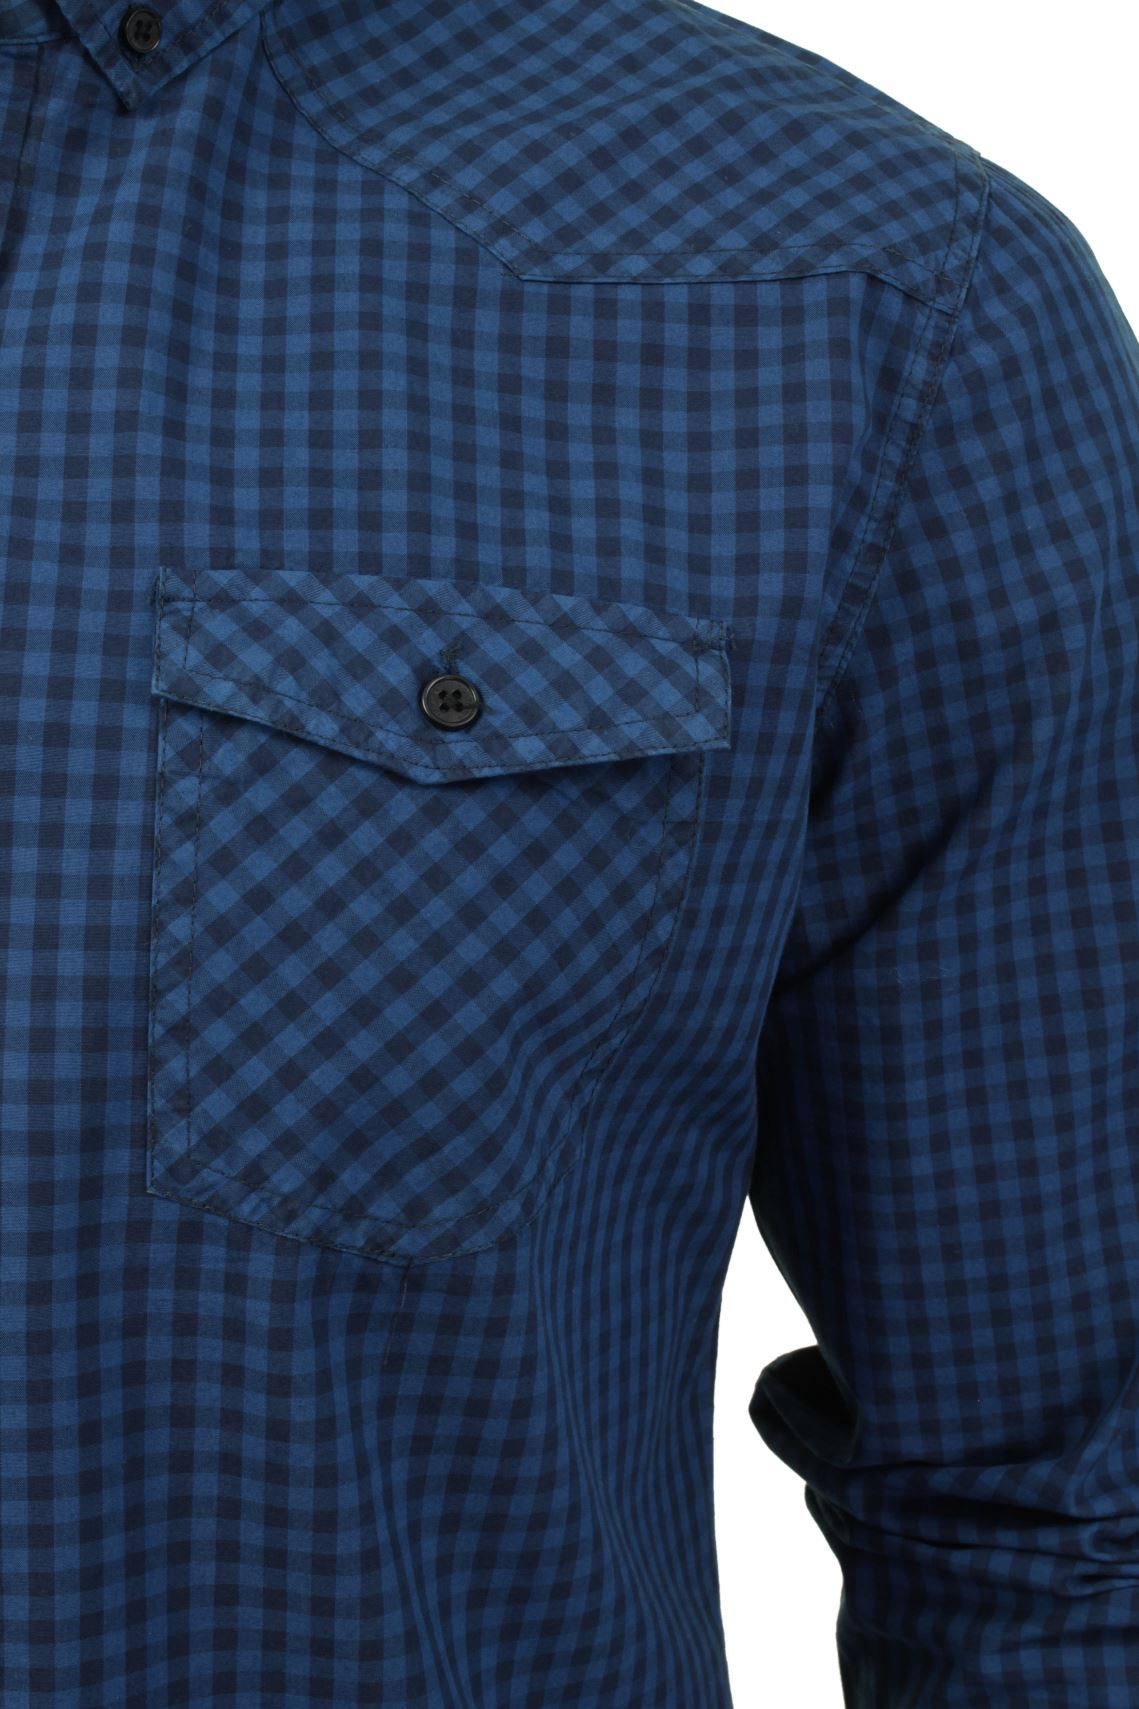 Mens-Check-Shirt-by-Smith-amp-Jones-039-Porticus-039-Long-Sleeved thumbnail 4